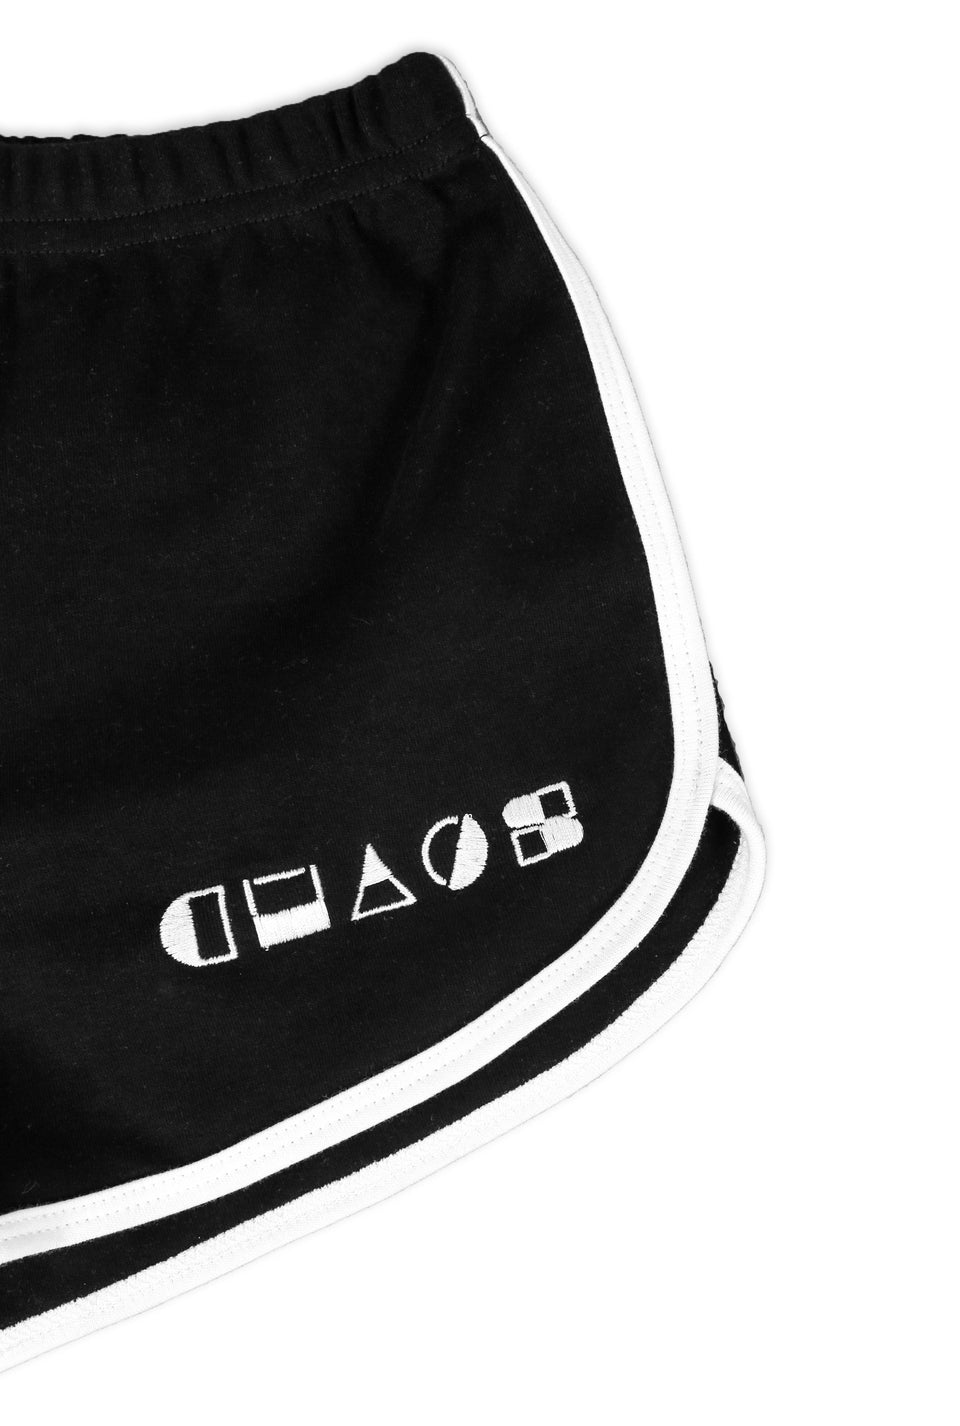 Chaos Shapes Running Shorts